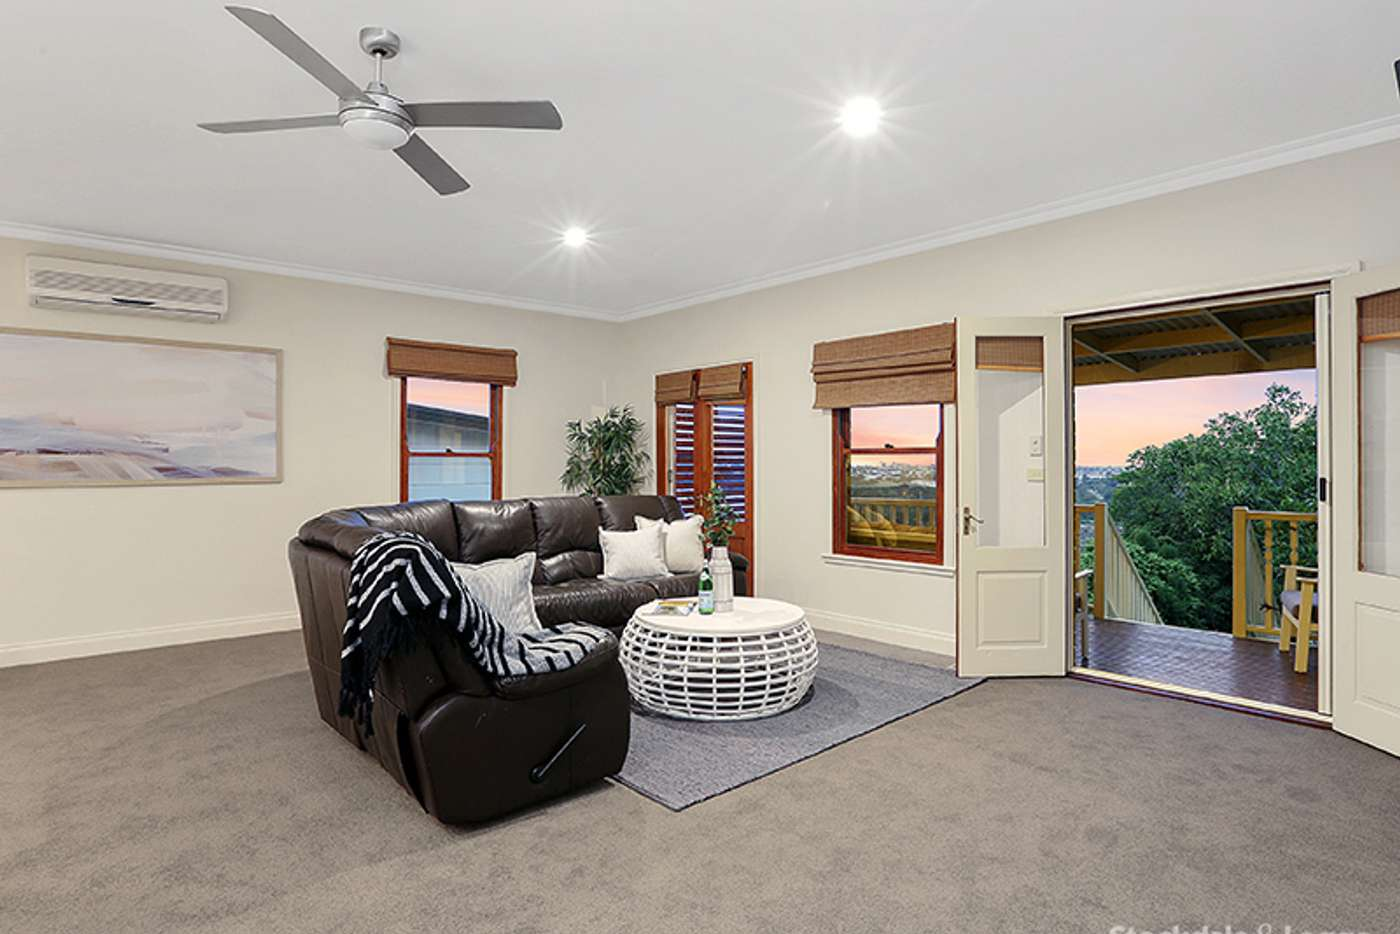 Sixth view of Homely house listing, 3 Mawarra Court, Highton VIC 3216